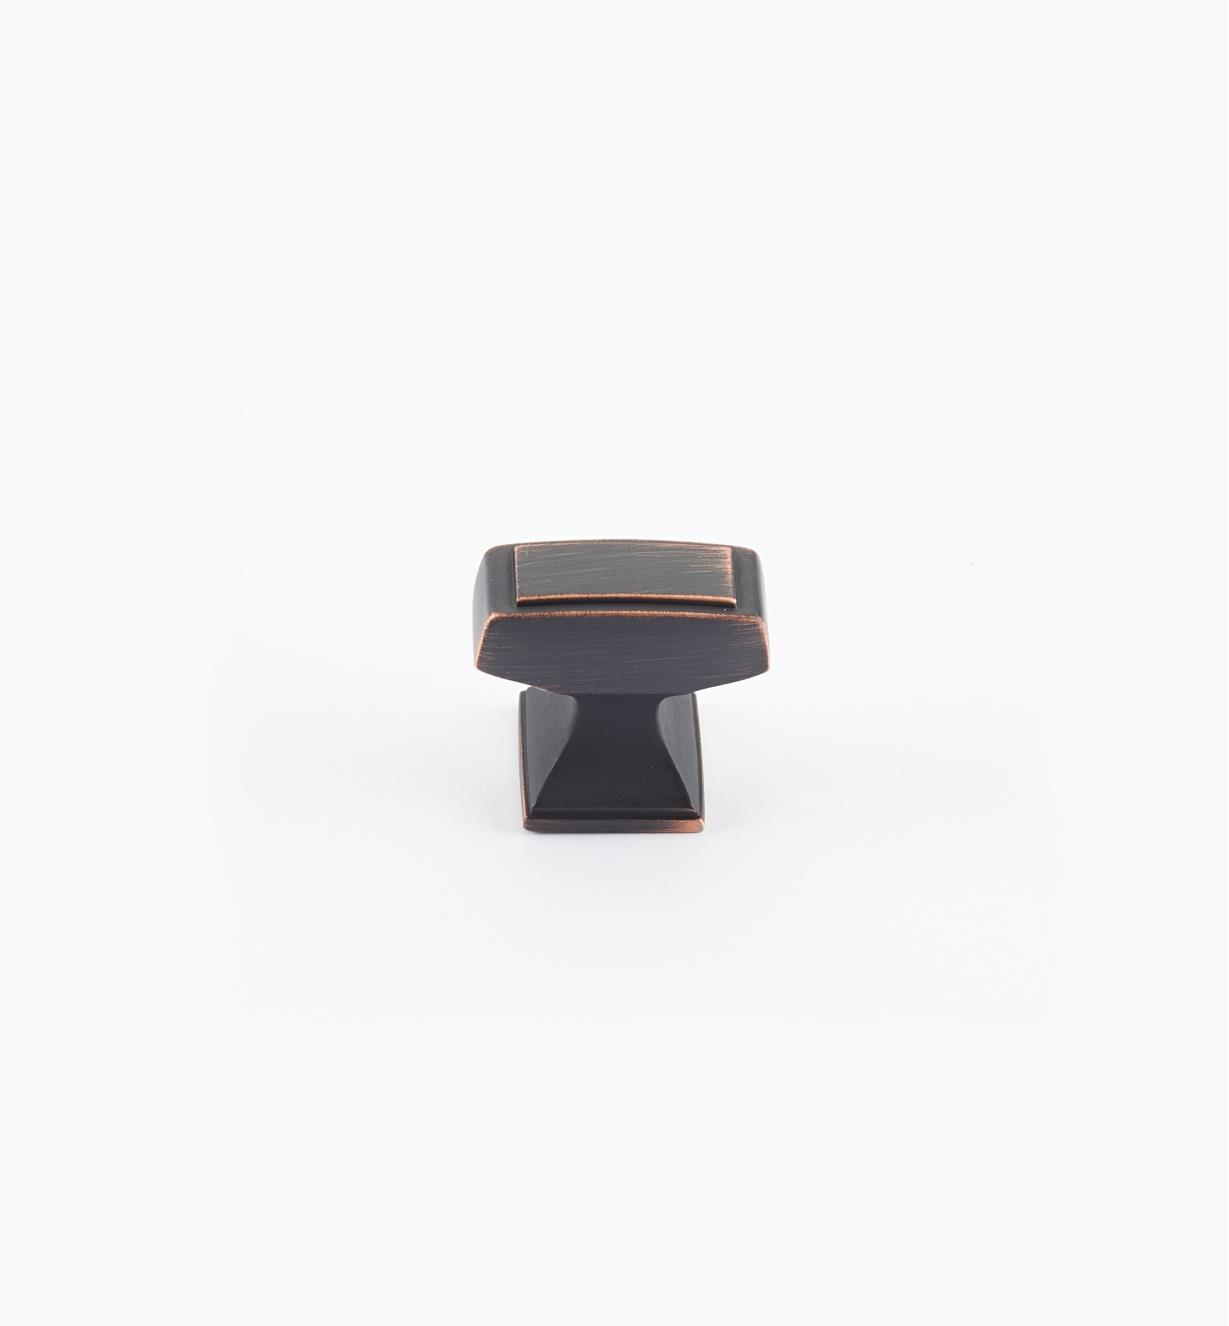 02A4520 - Oil-Rubbed Bronze Knob